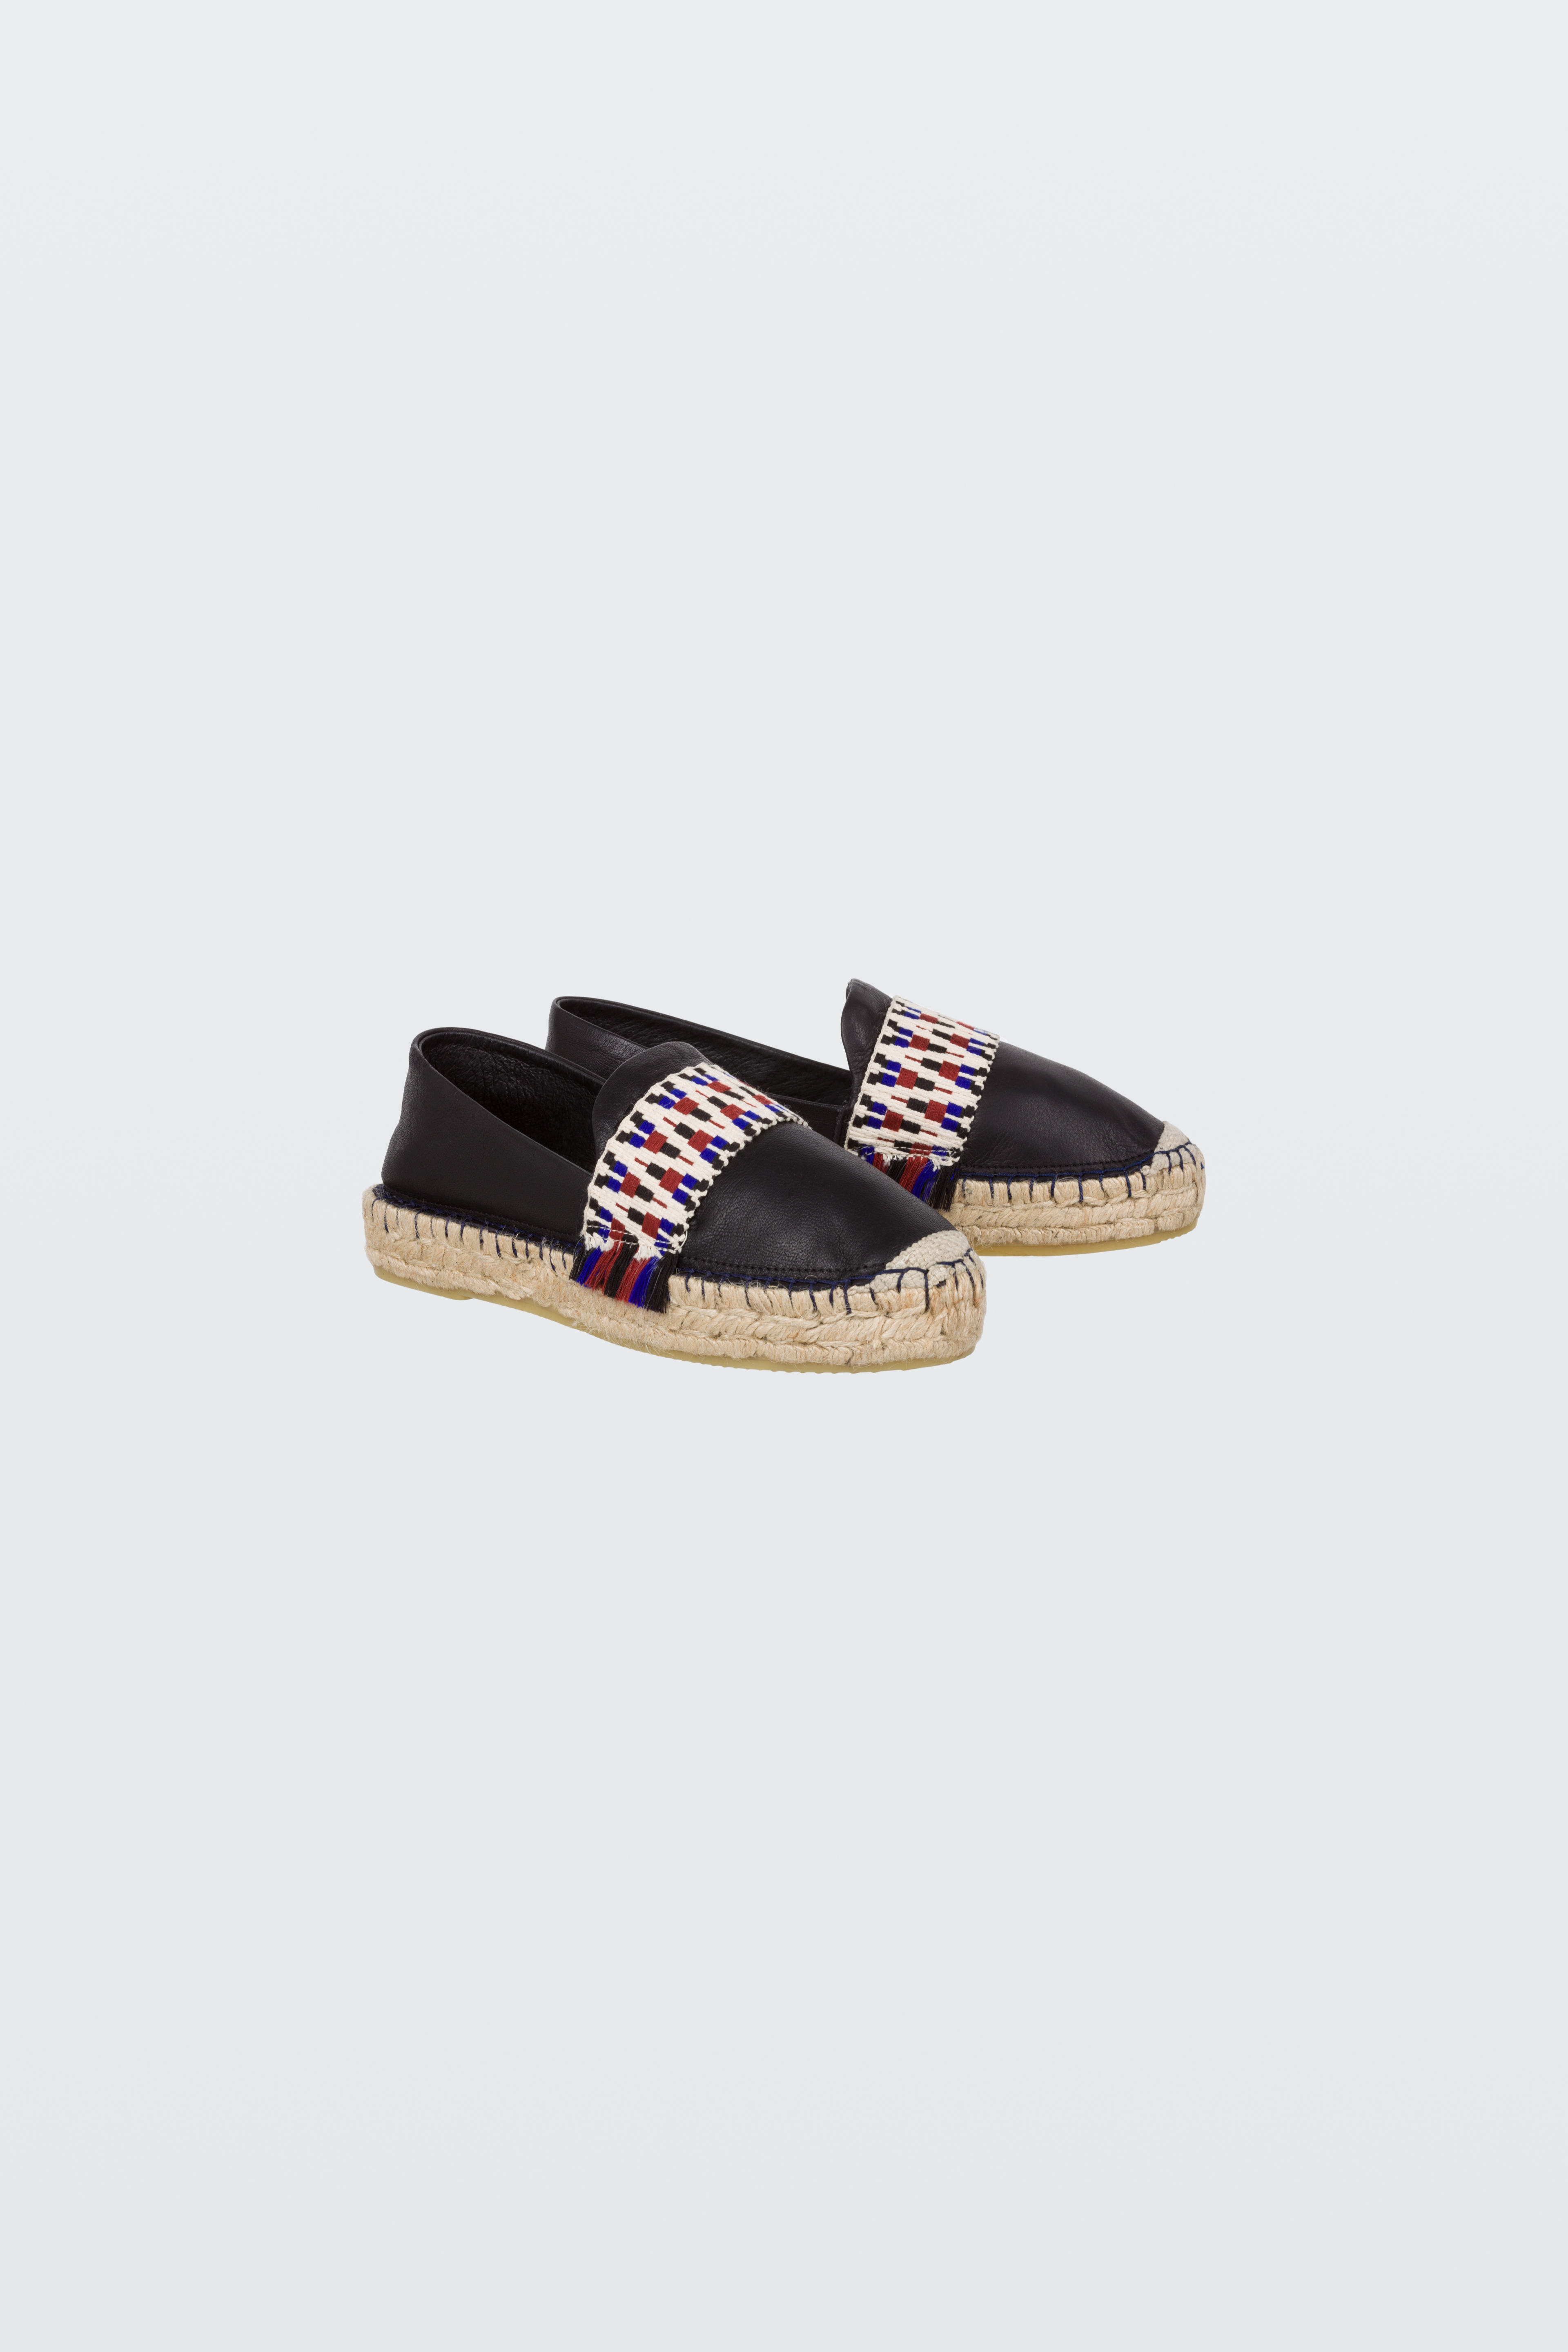 SUMMER SOFTNESS mule espadrille with woven leather 38 Dorothee Schumacher quJdh